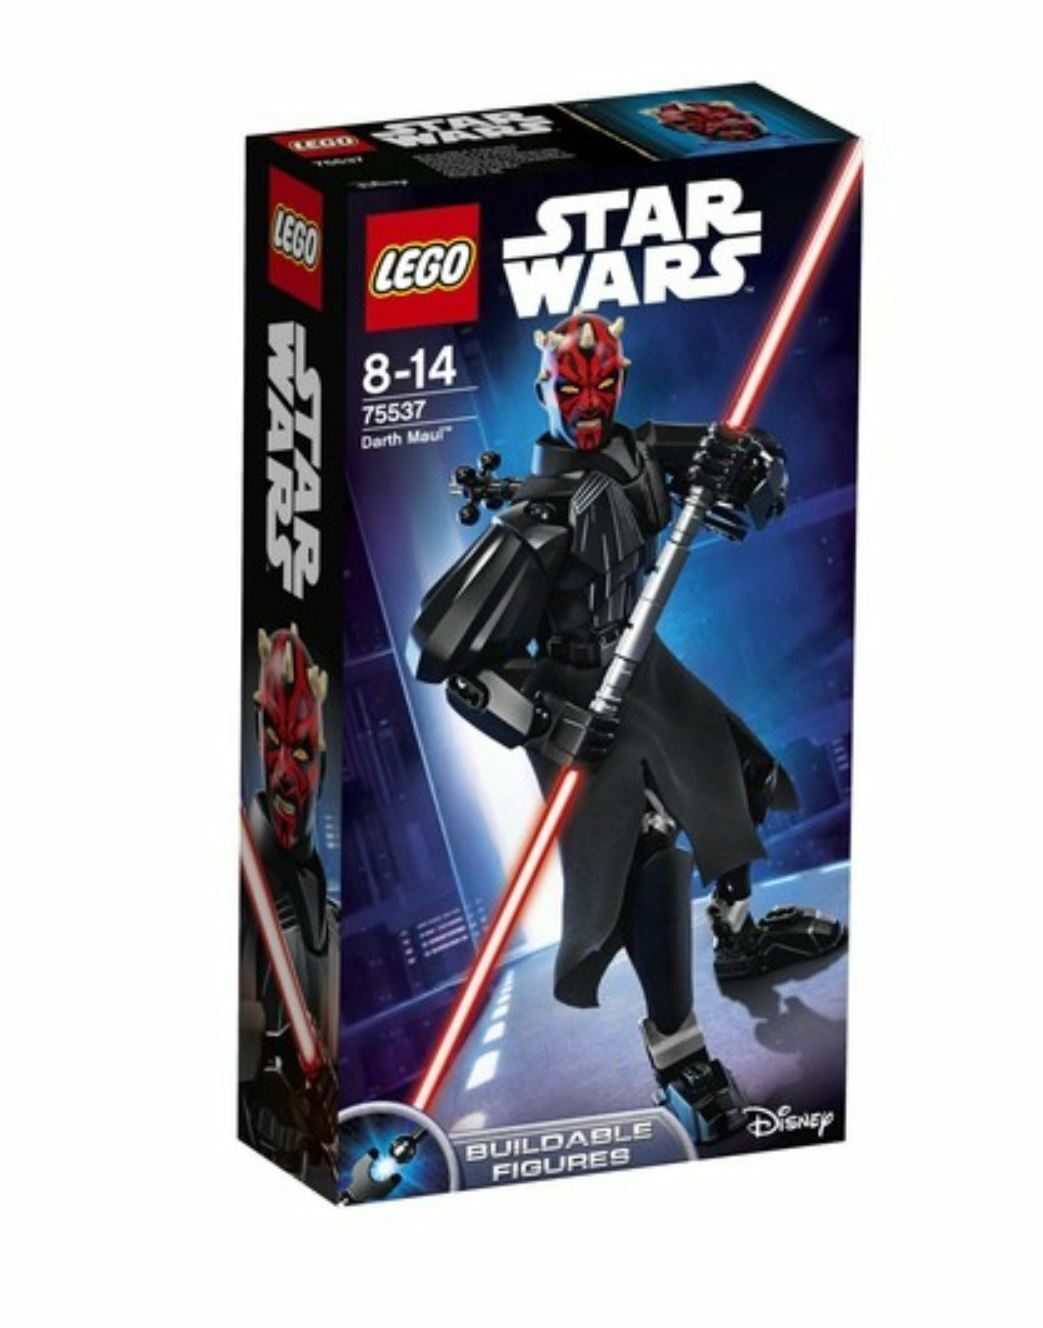 [LEGO] STARWARS Darth Maul™ 75537 2018 Version Free Shipping